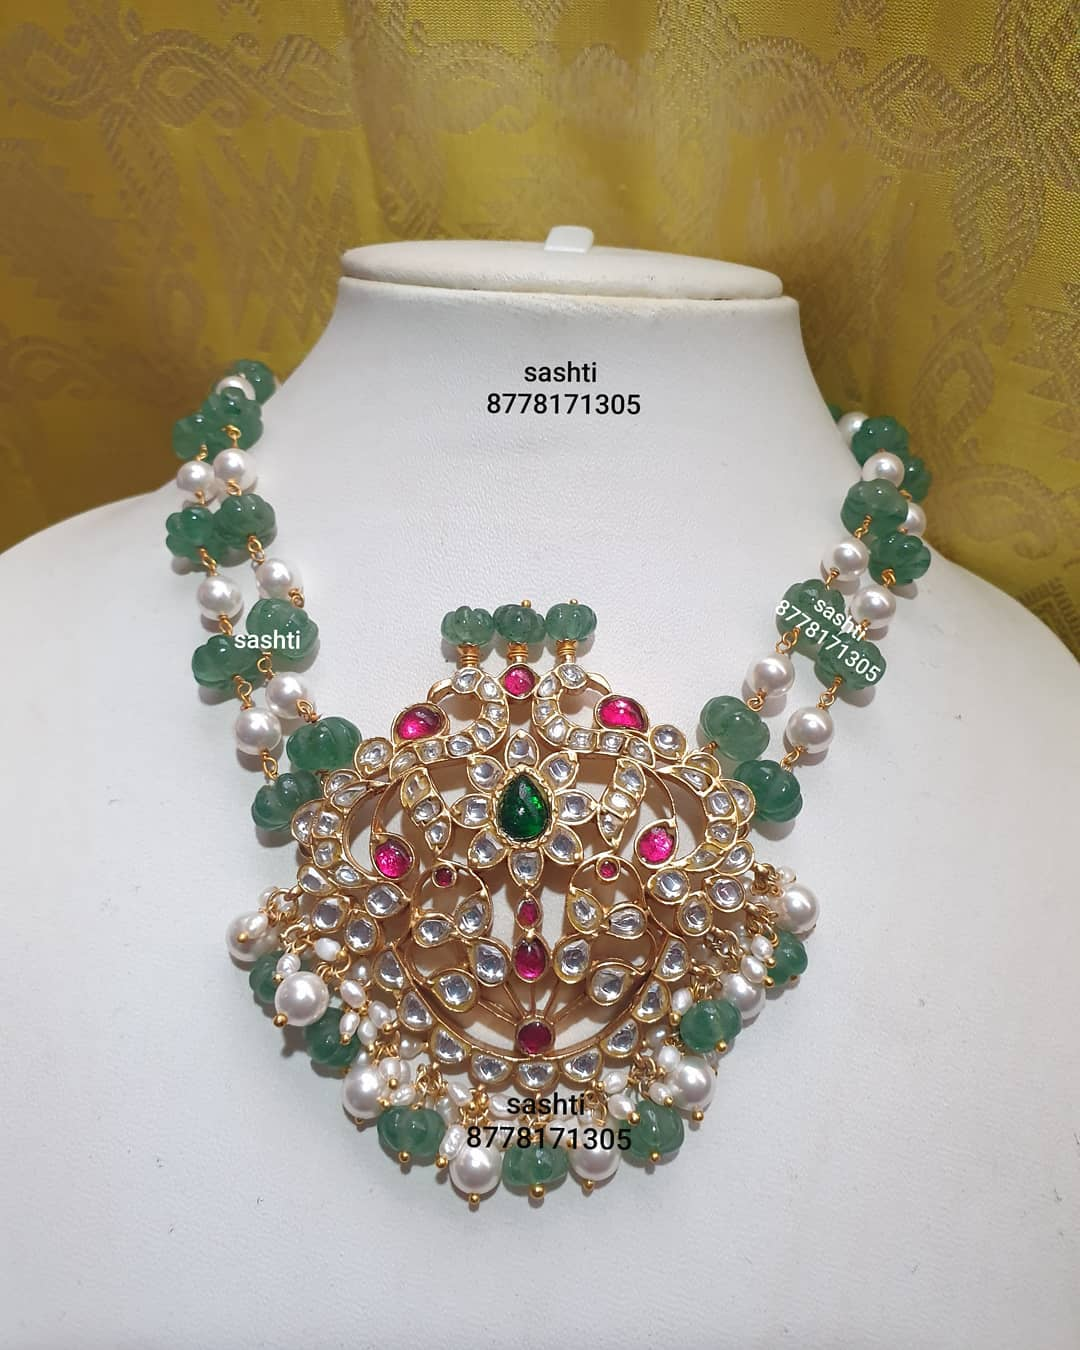 Stunning pearl and emerald necklace with silver peacock pendant. Pendant studded with kundans.  2021-01-10